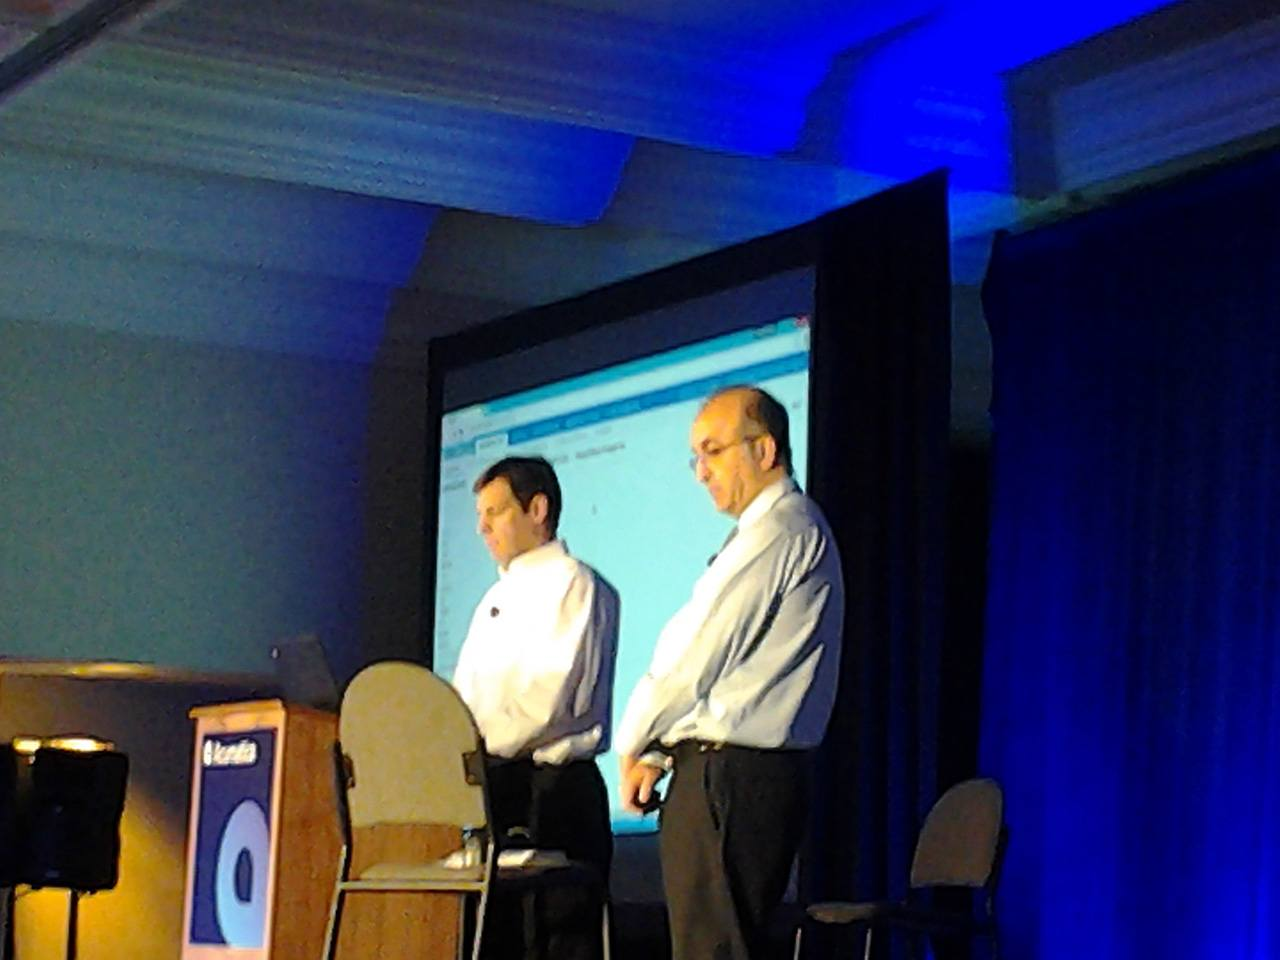 Doug Johnson and Ali Jani demo some awesome vertical functionality and partnerships during the first Tuesday Keynote